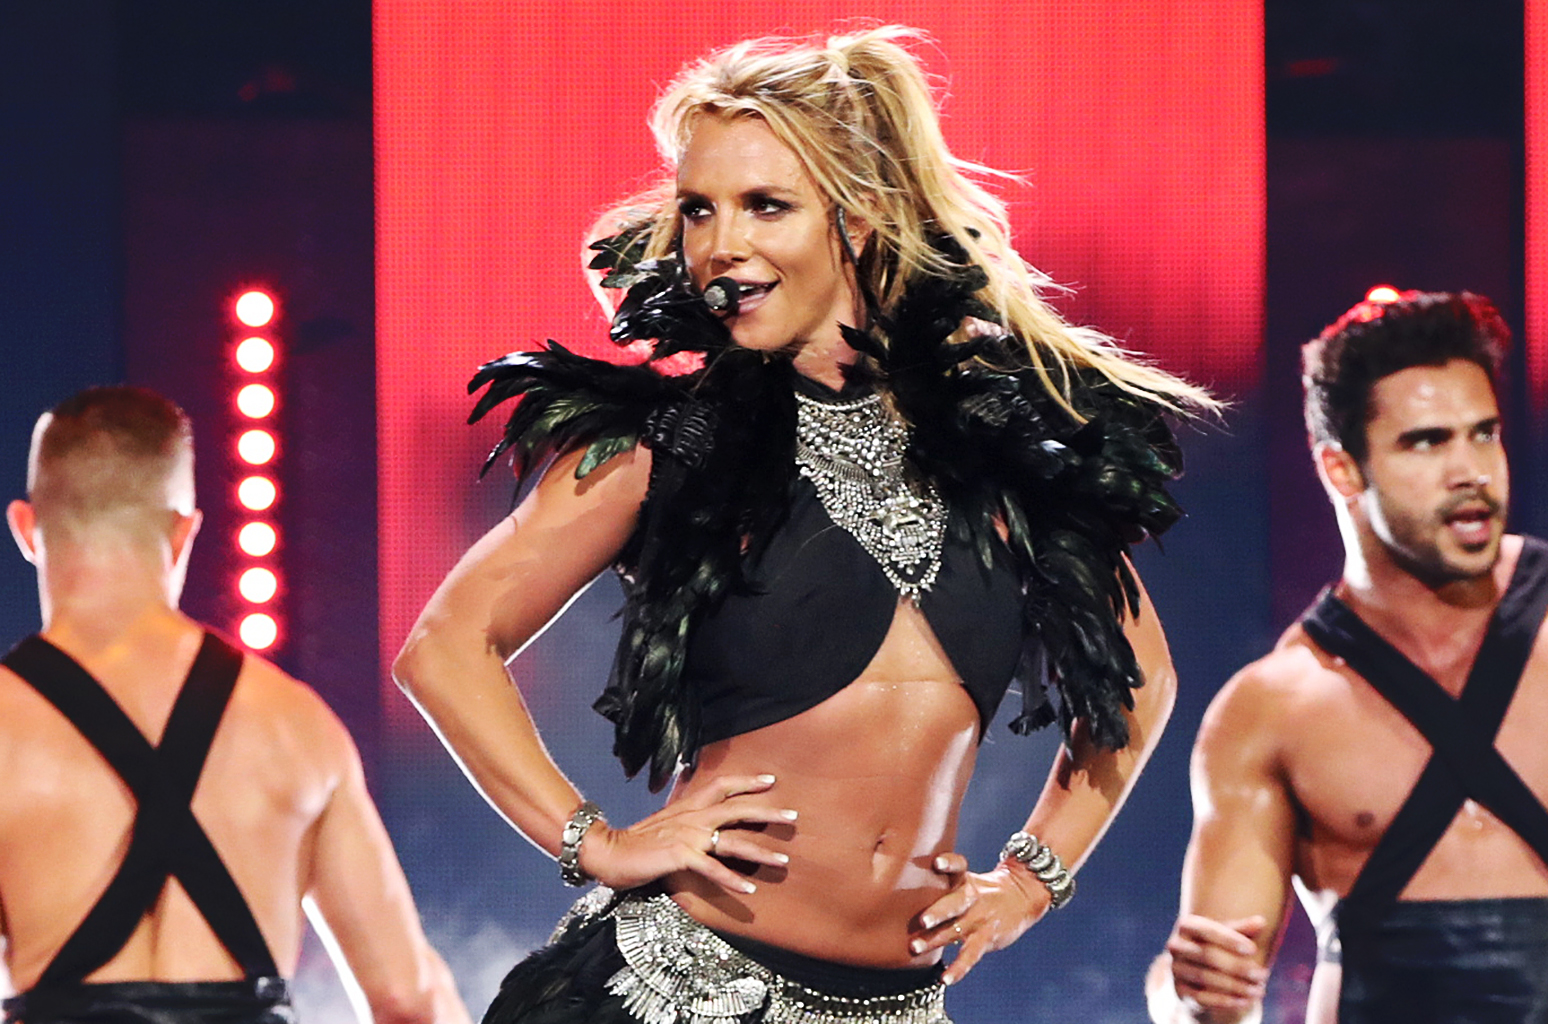 Britney Spears' Piece of Me Show Tops $100 Million in Ticket Sales | Billboard